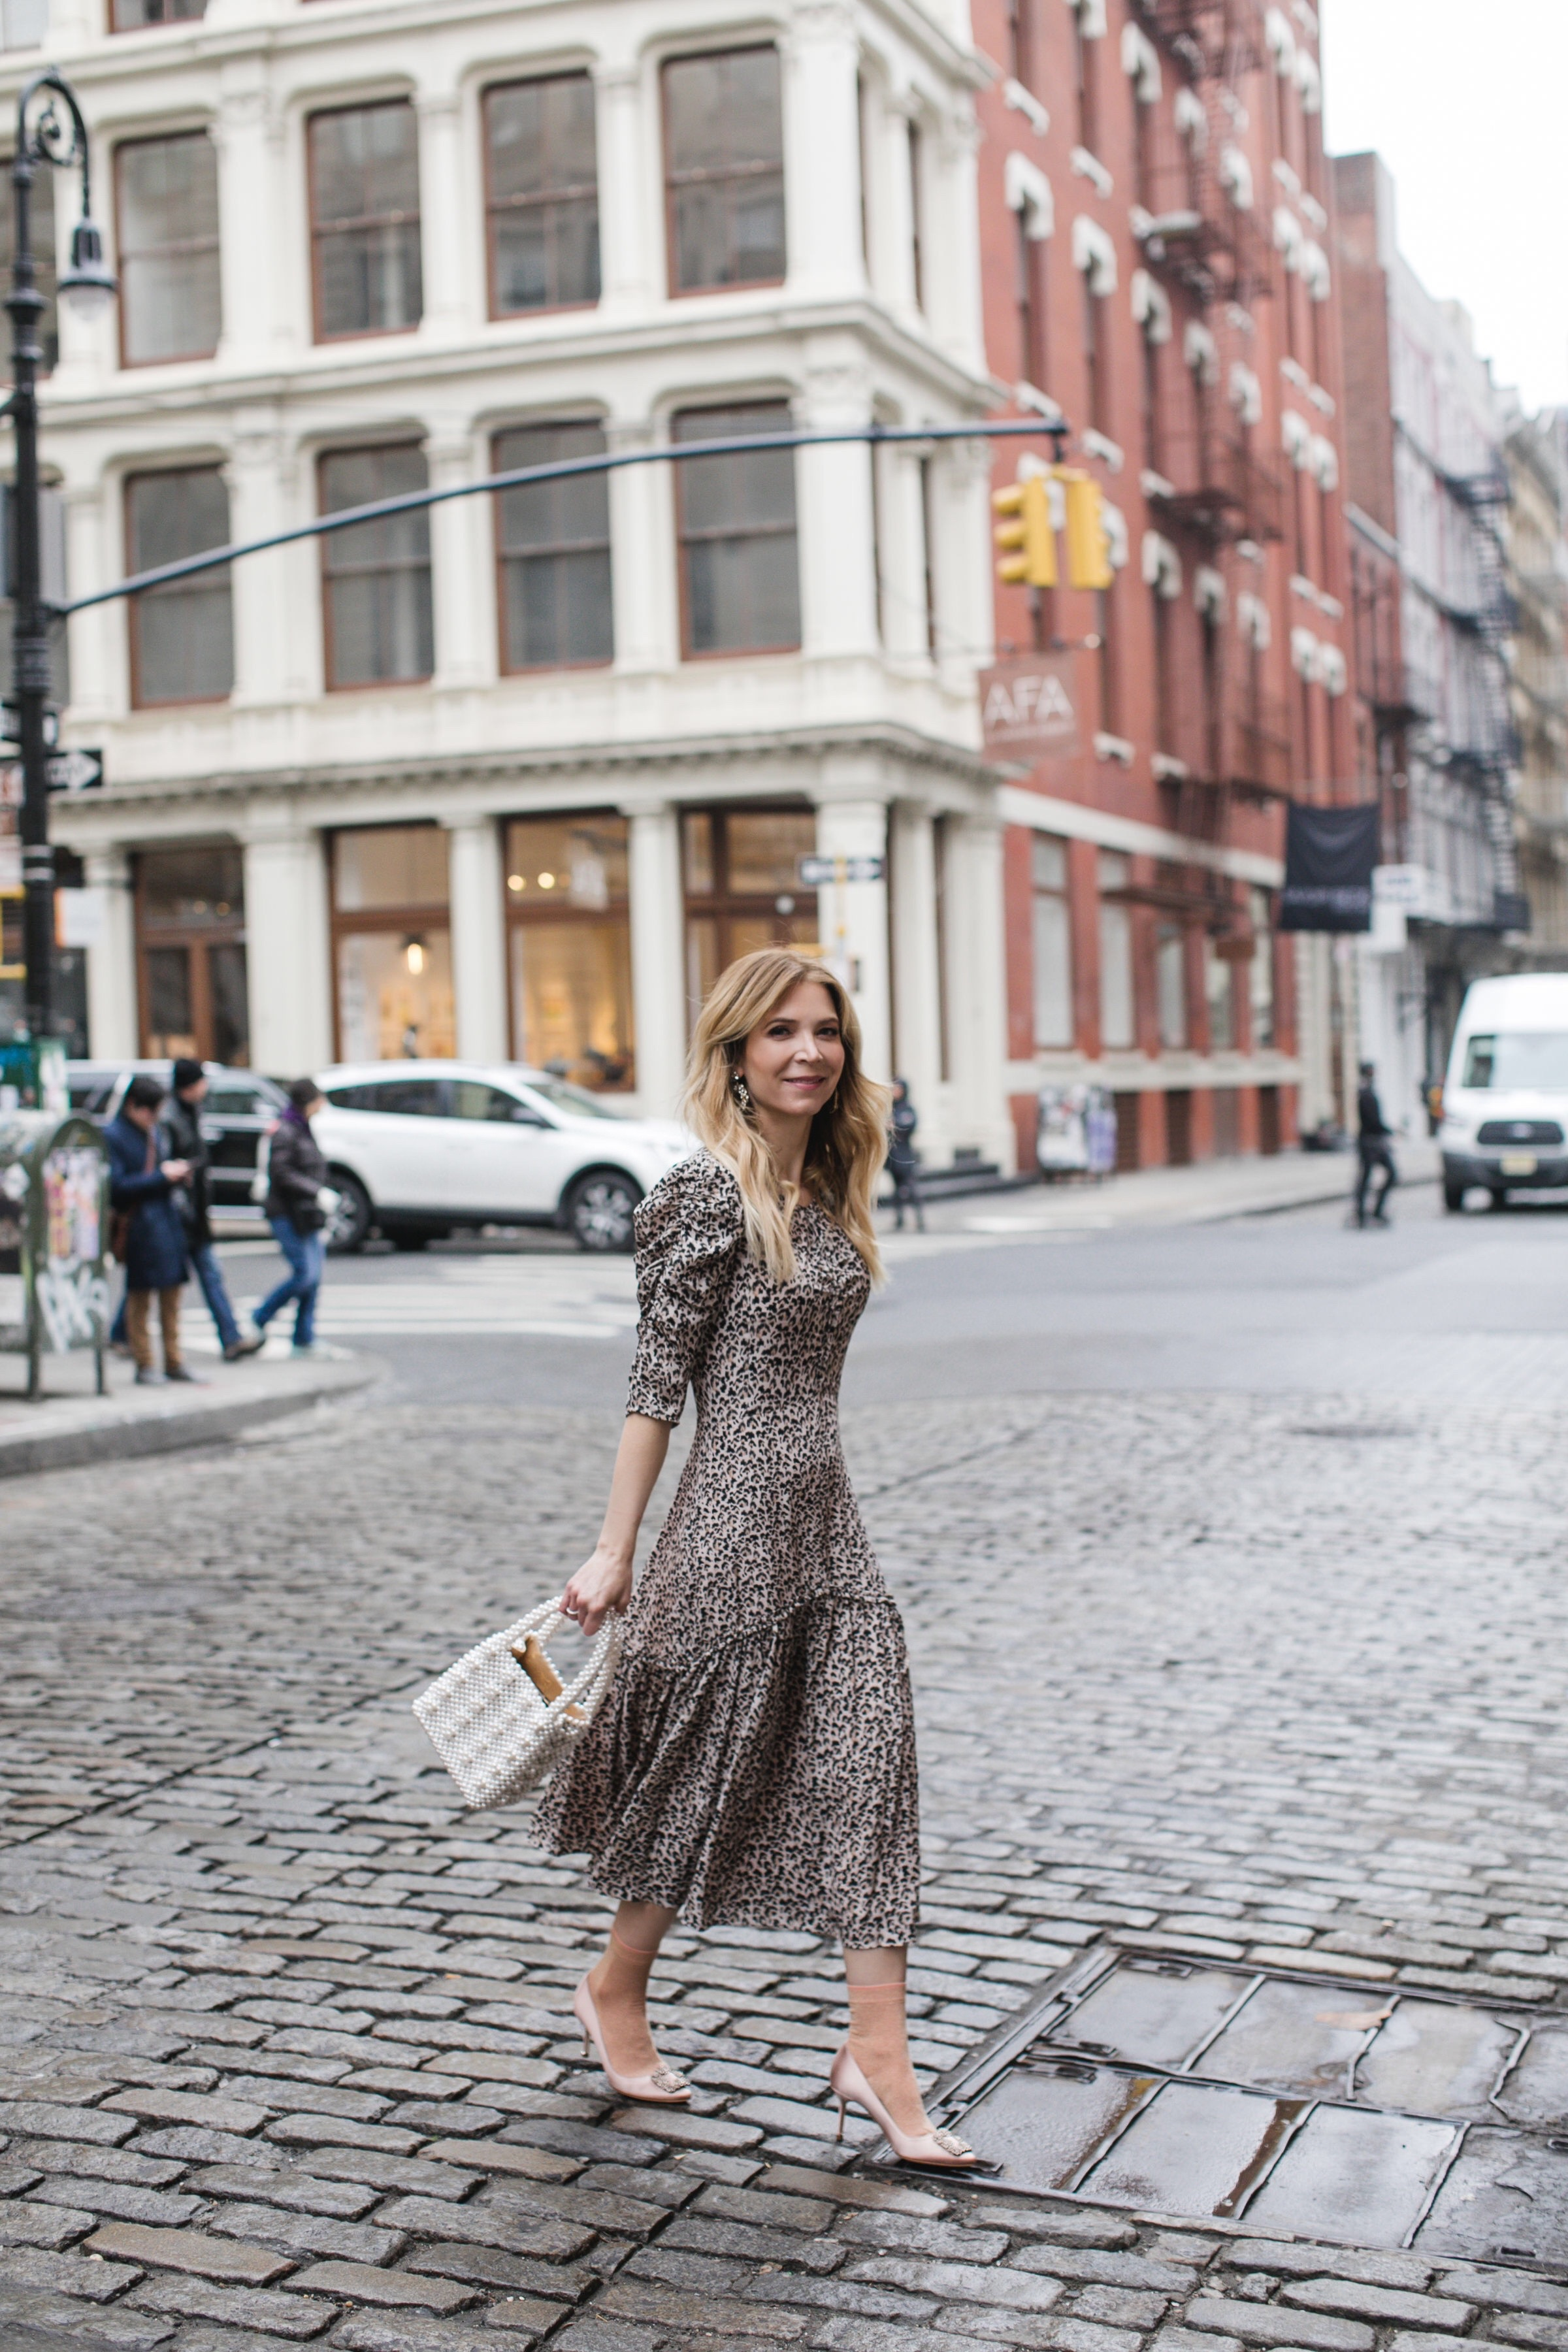 Rebecca Taylor dress, Rebecca Taylor, Shrimps bag, www.abouttheoutfits.com, NYC fashion, NYC street style, Laura Bonner